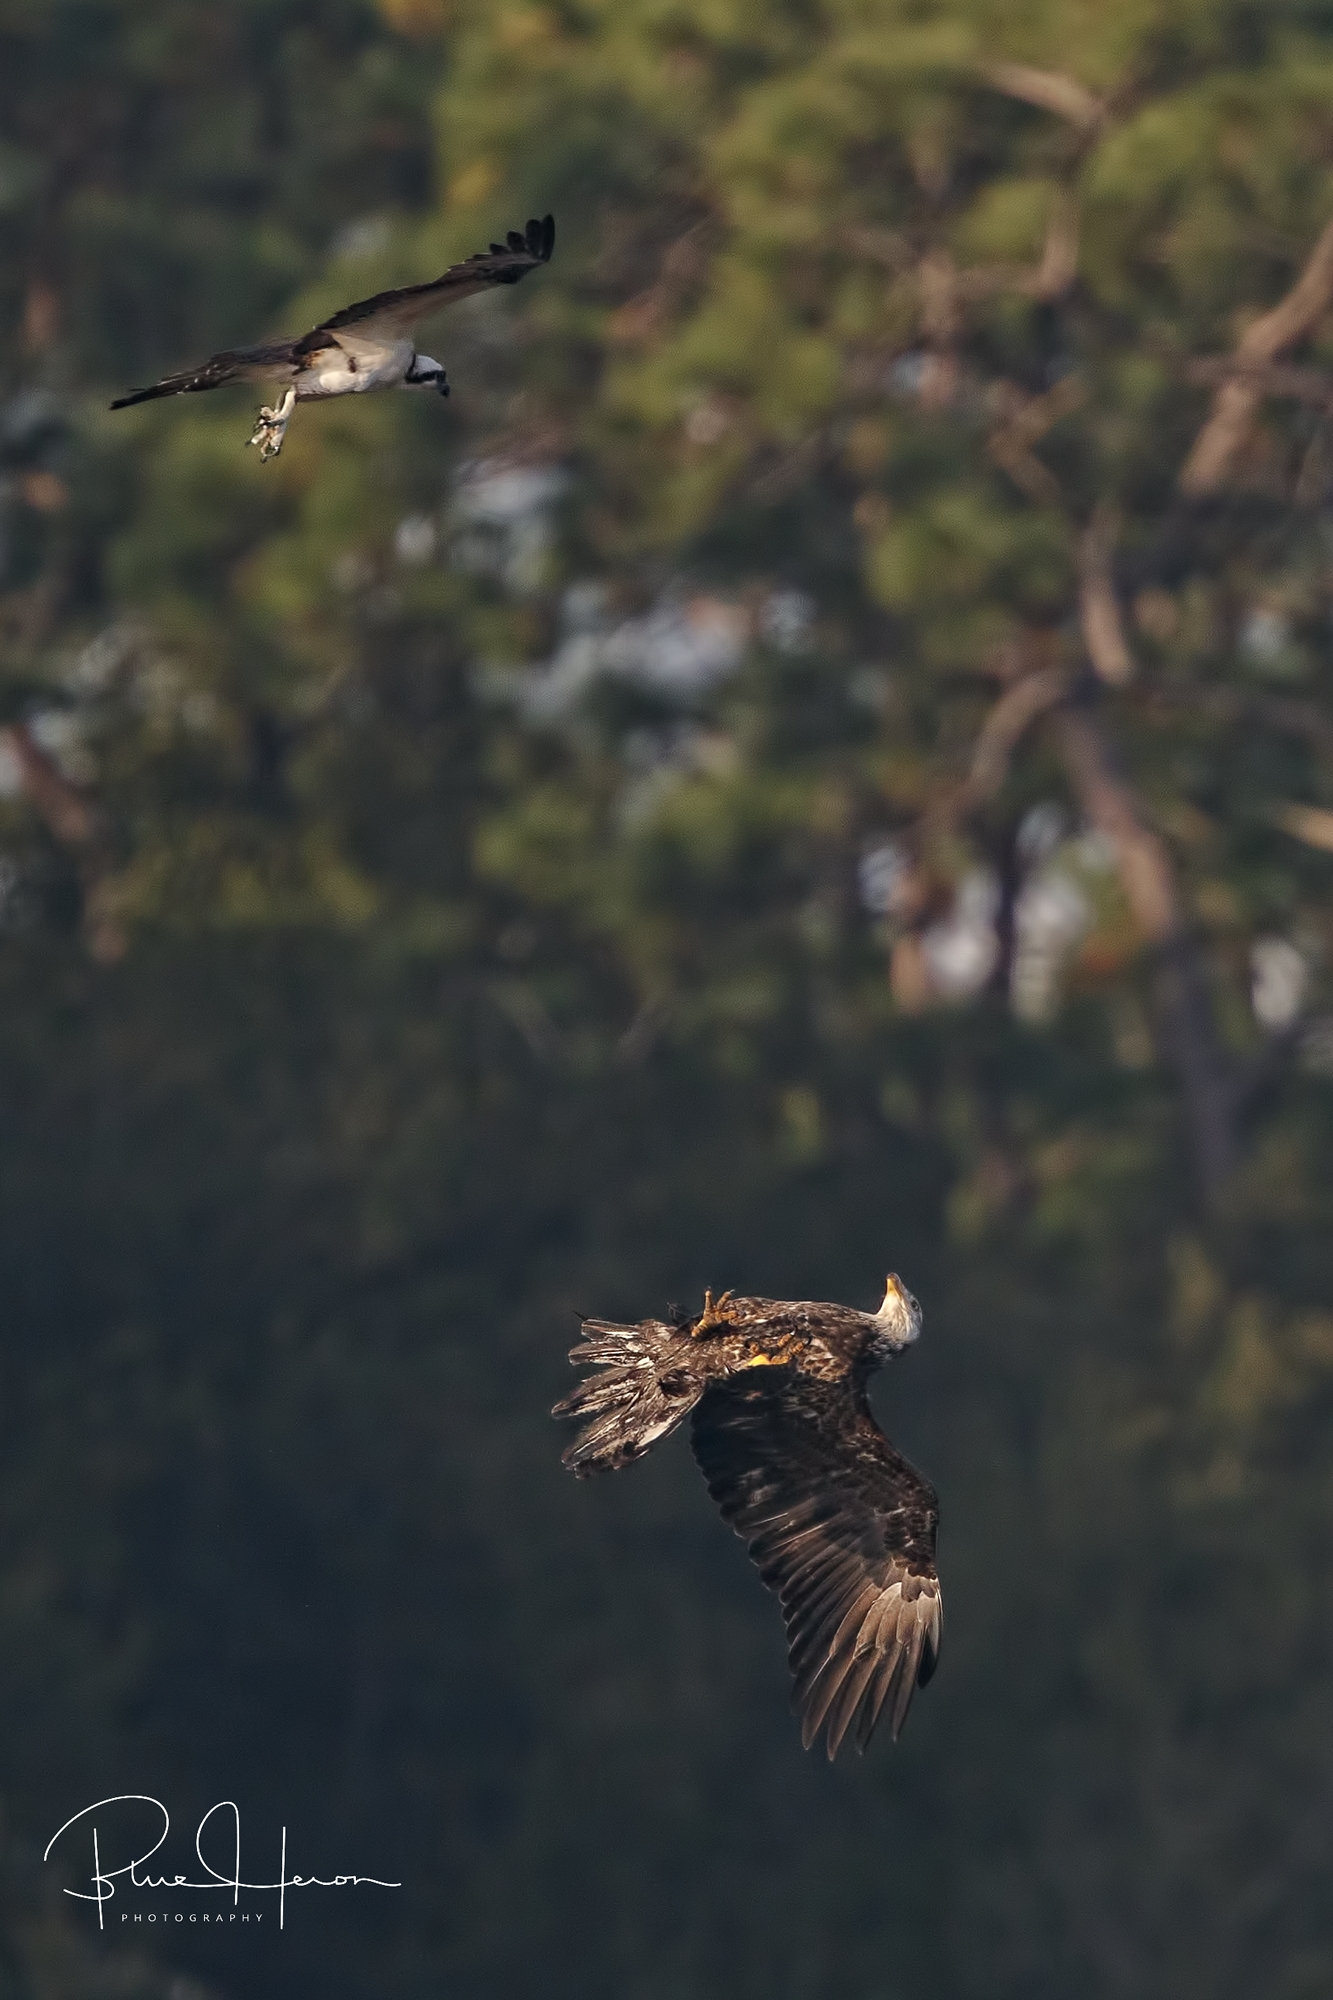 The Eagle rolls over and shows its much larger talons, the conflict is soon over